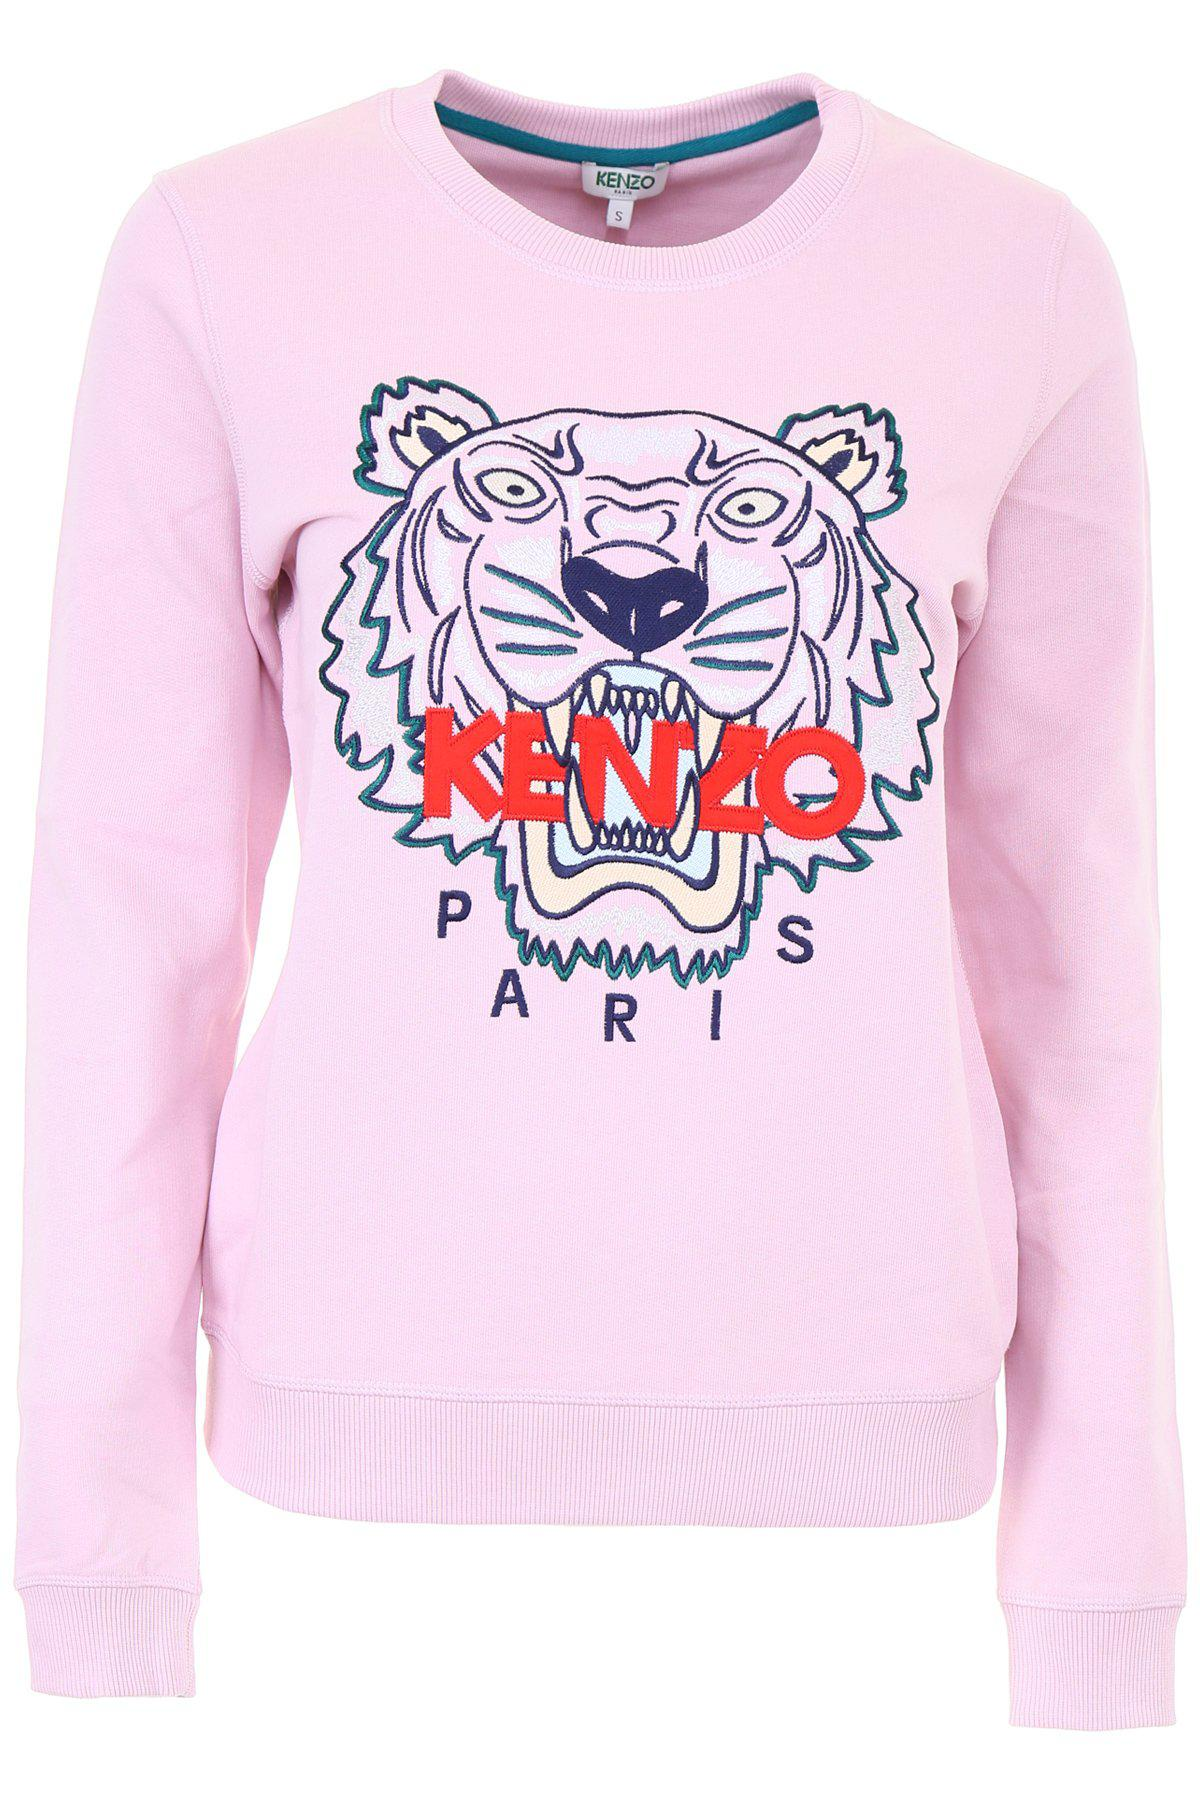 14d774f7 KENZO Tiger Print Sweater in Pink - Lyst